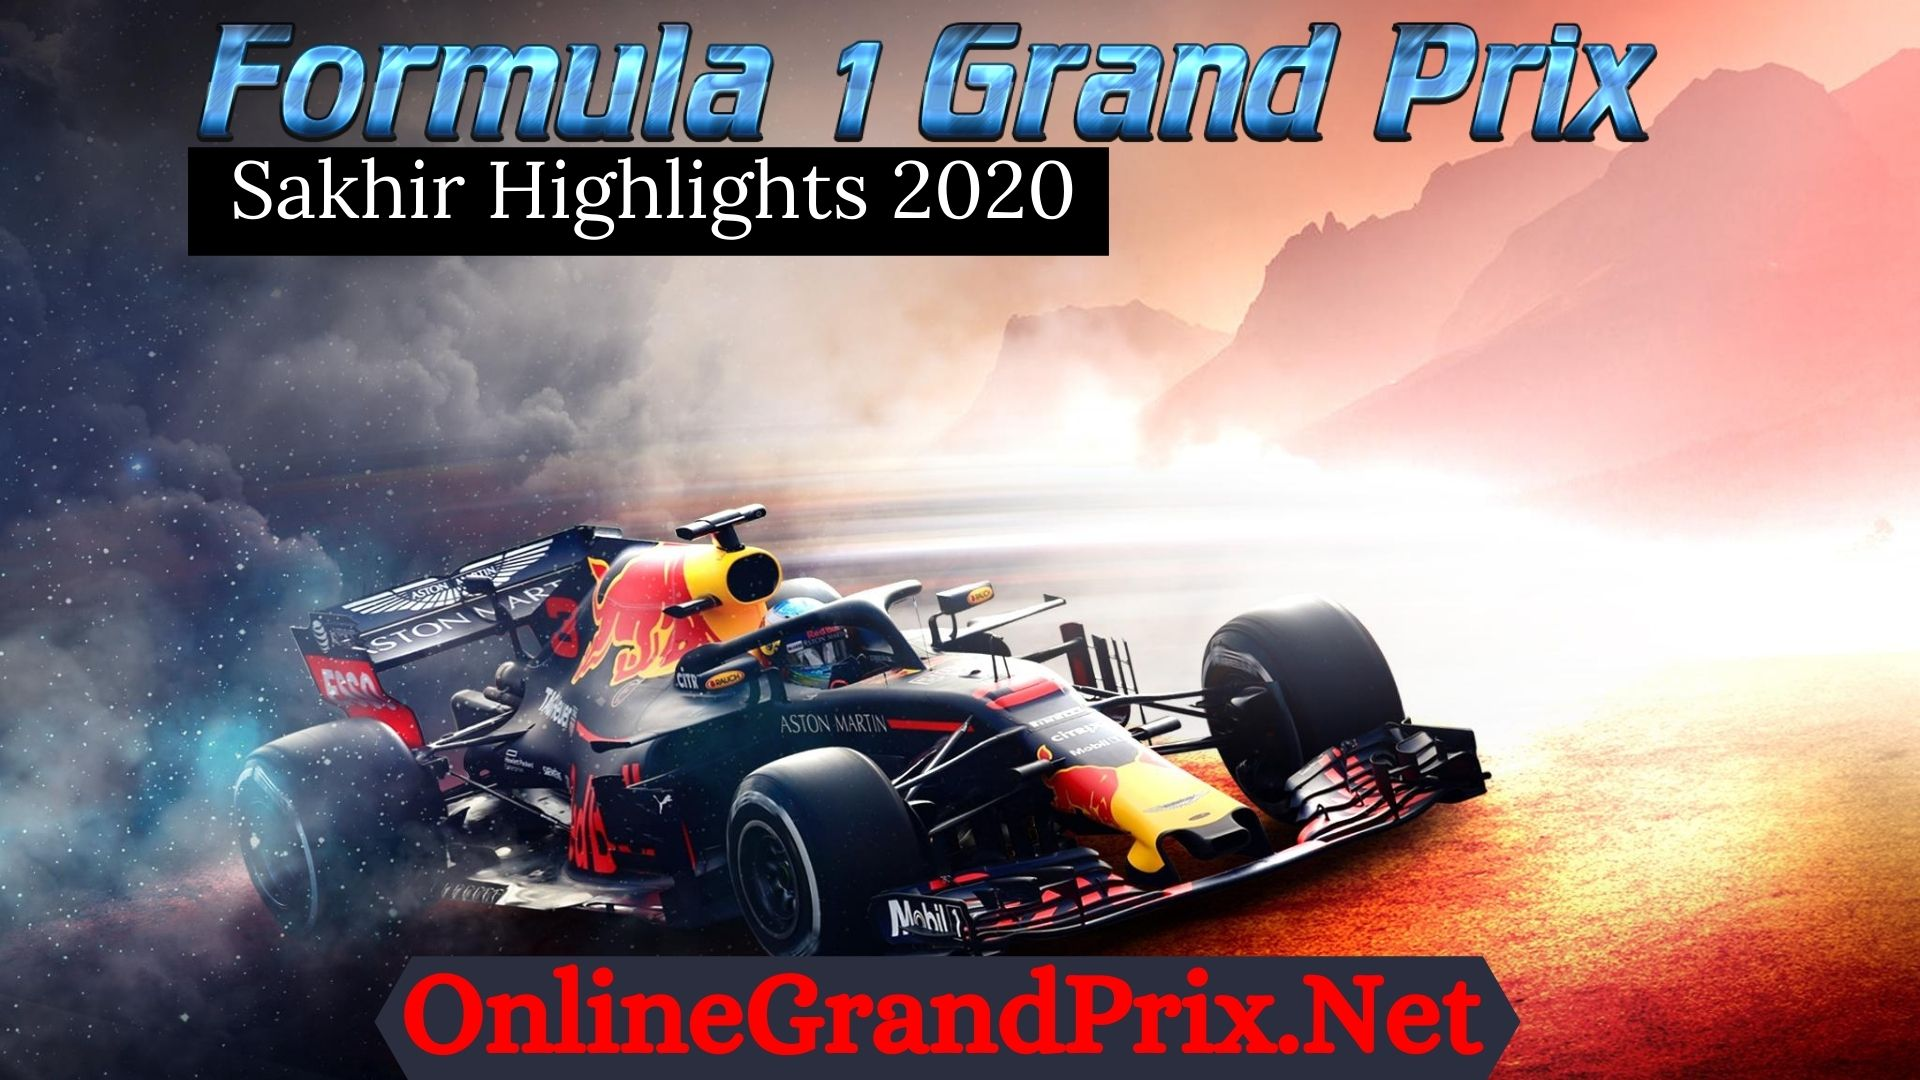 Sakhir GP F1 Highlights 2020